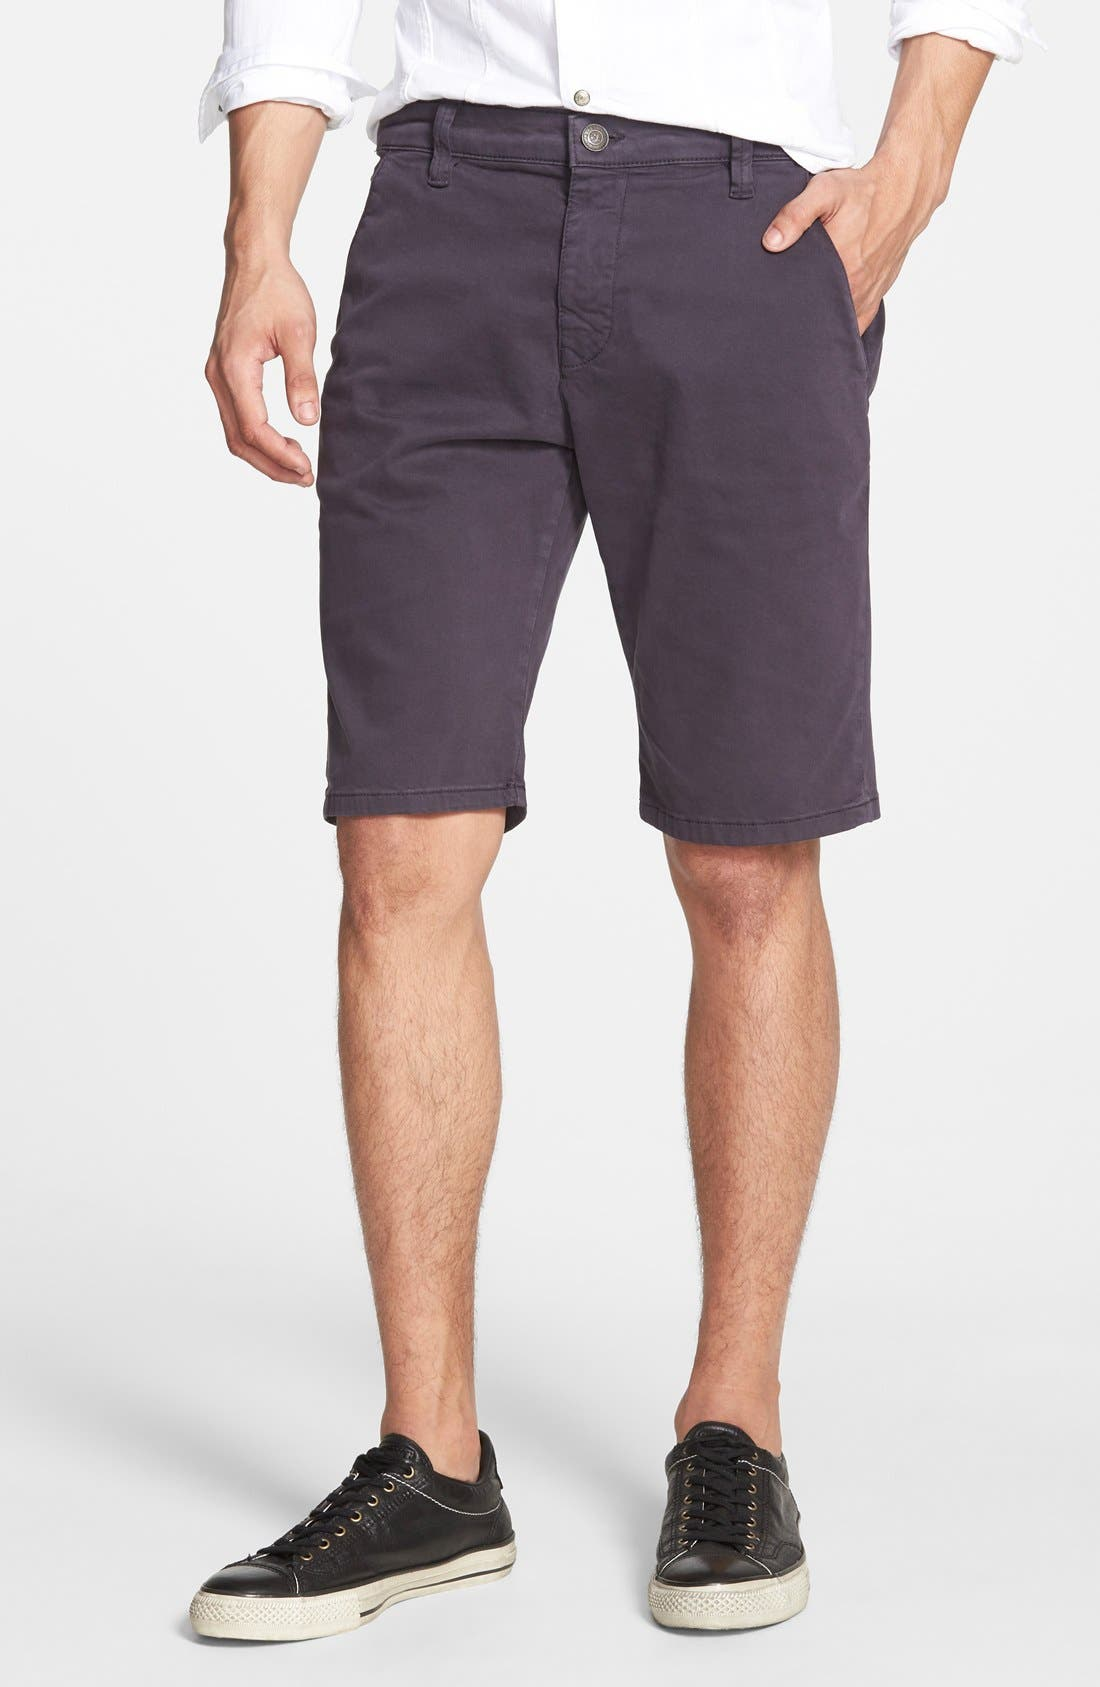 MAVI JEANS 'Jacob' Shorts